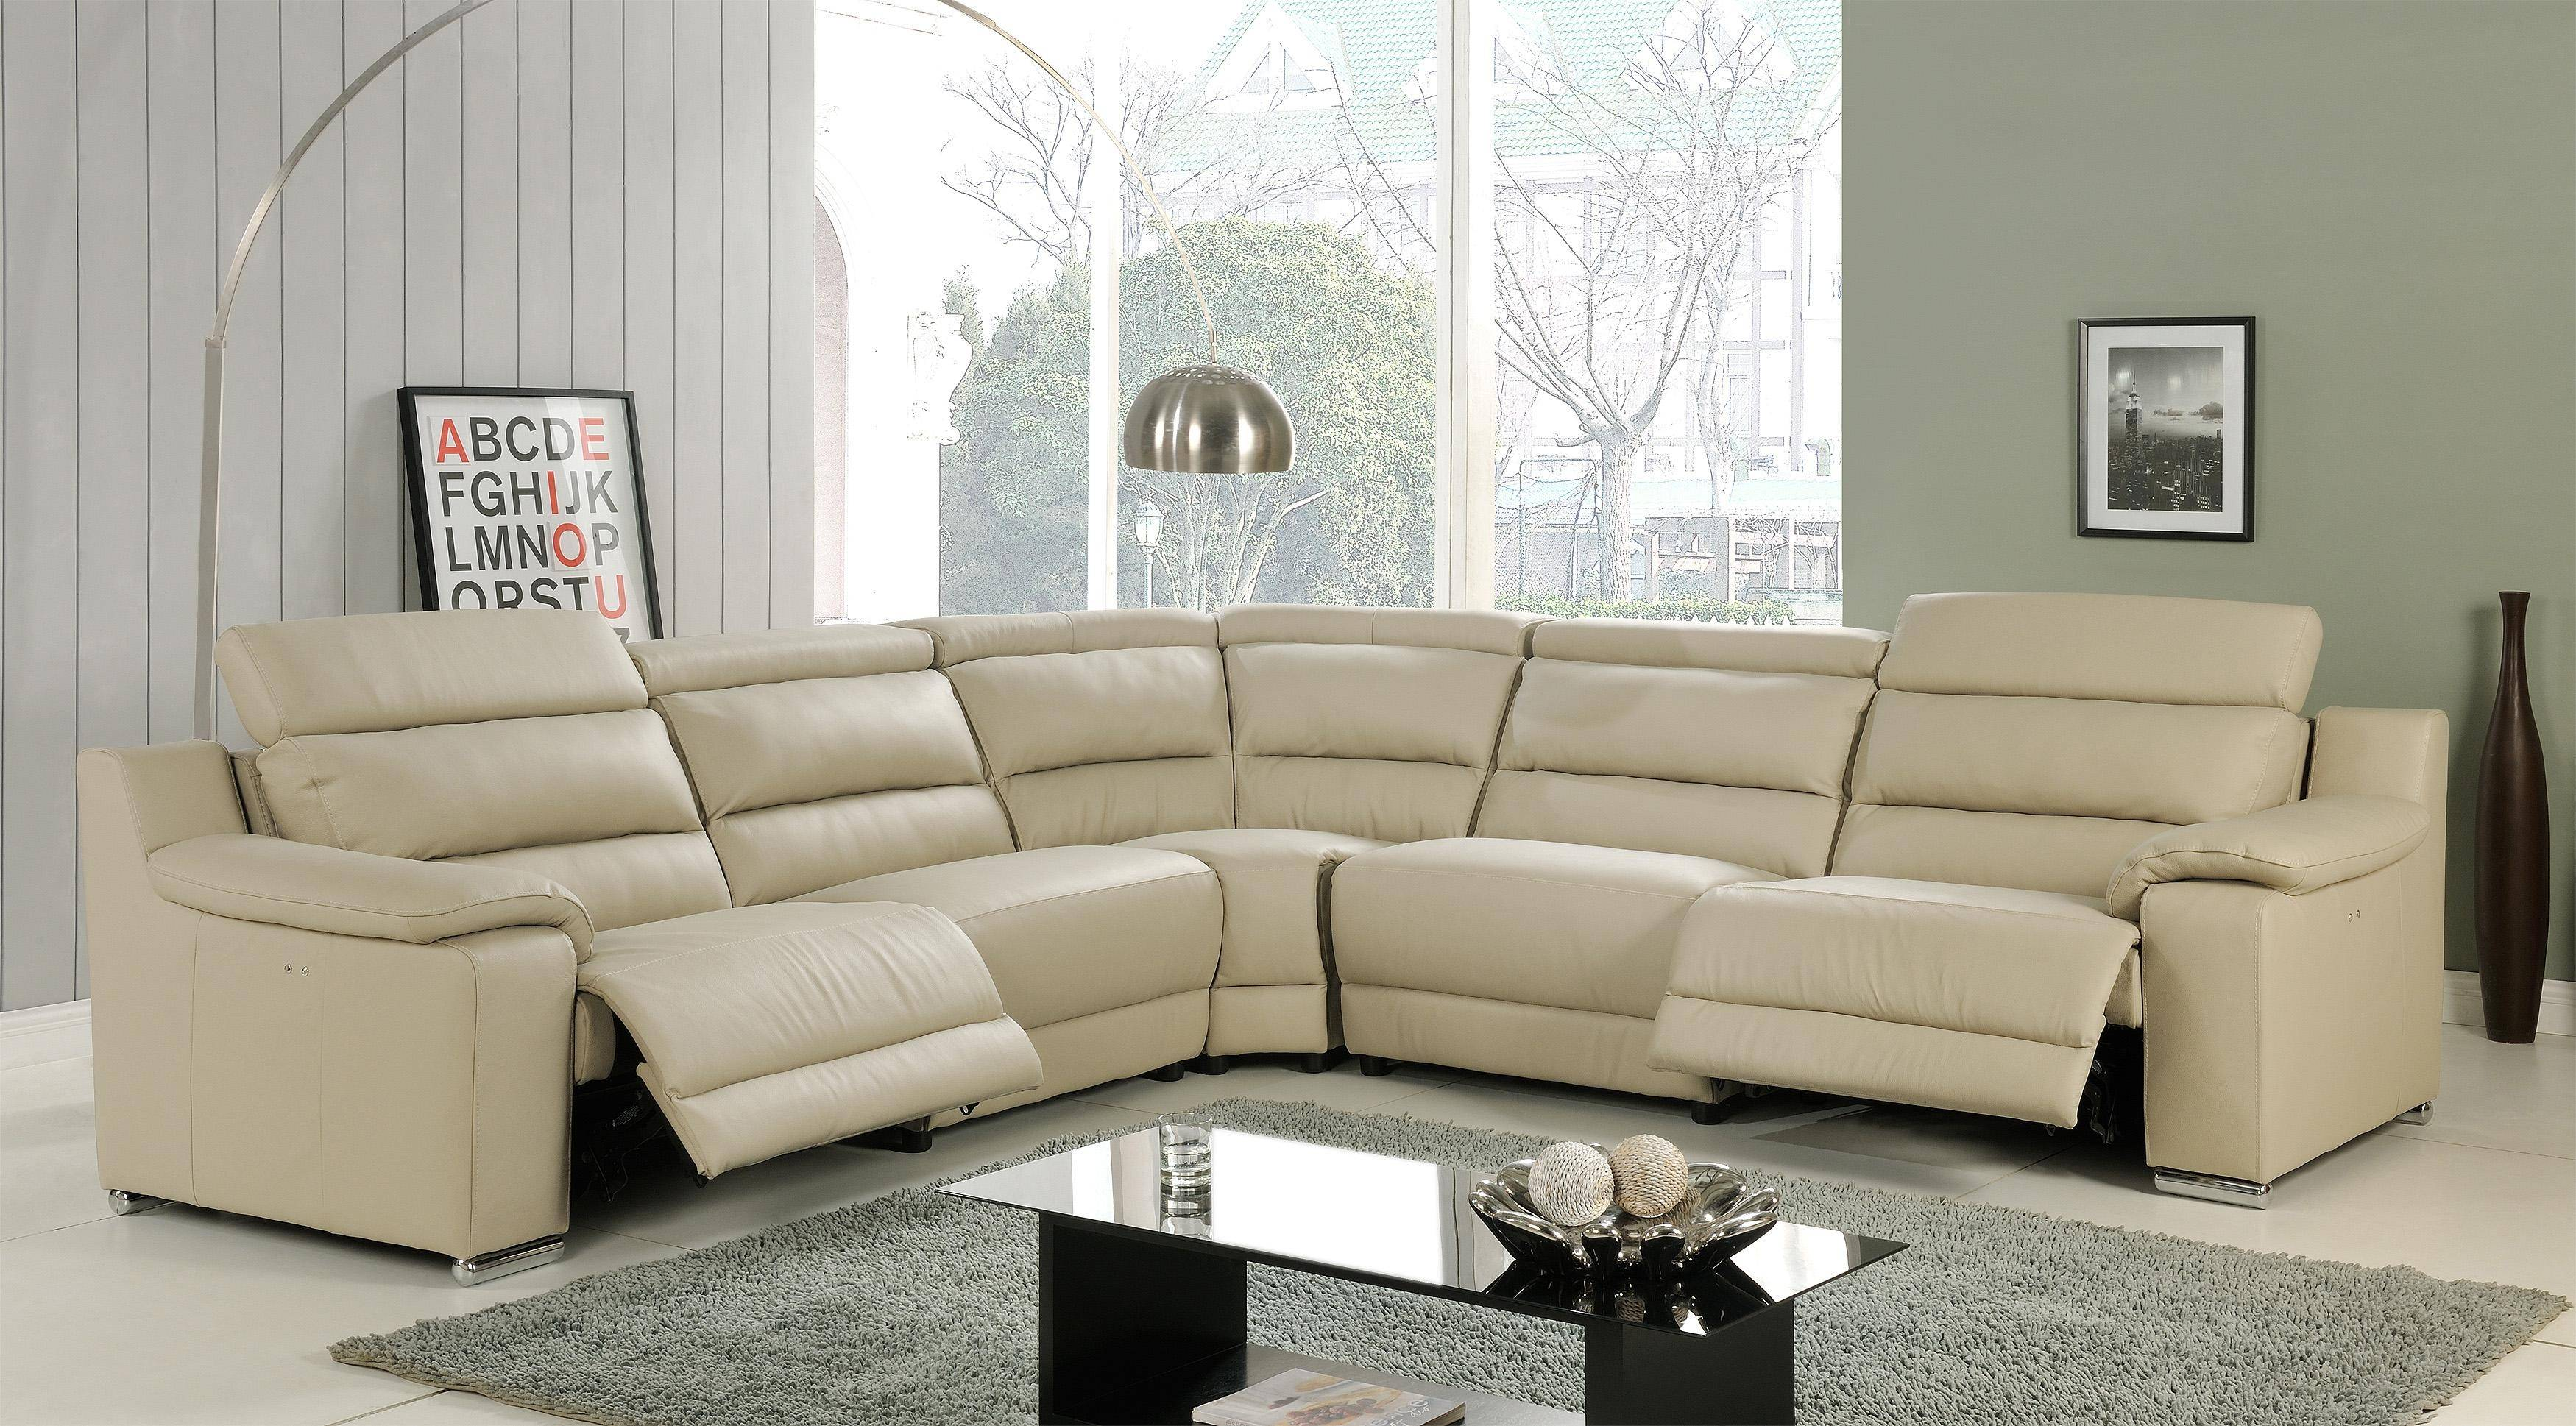 At Home Usa Elda Luxury Beige Italian Leather Sectional Recliner Contemporary Reviews Skuc52be